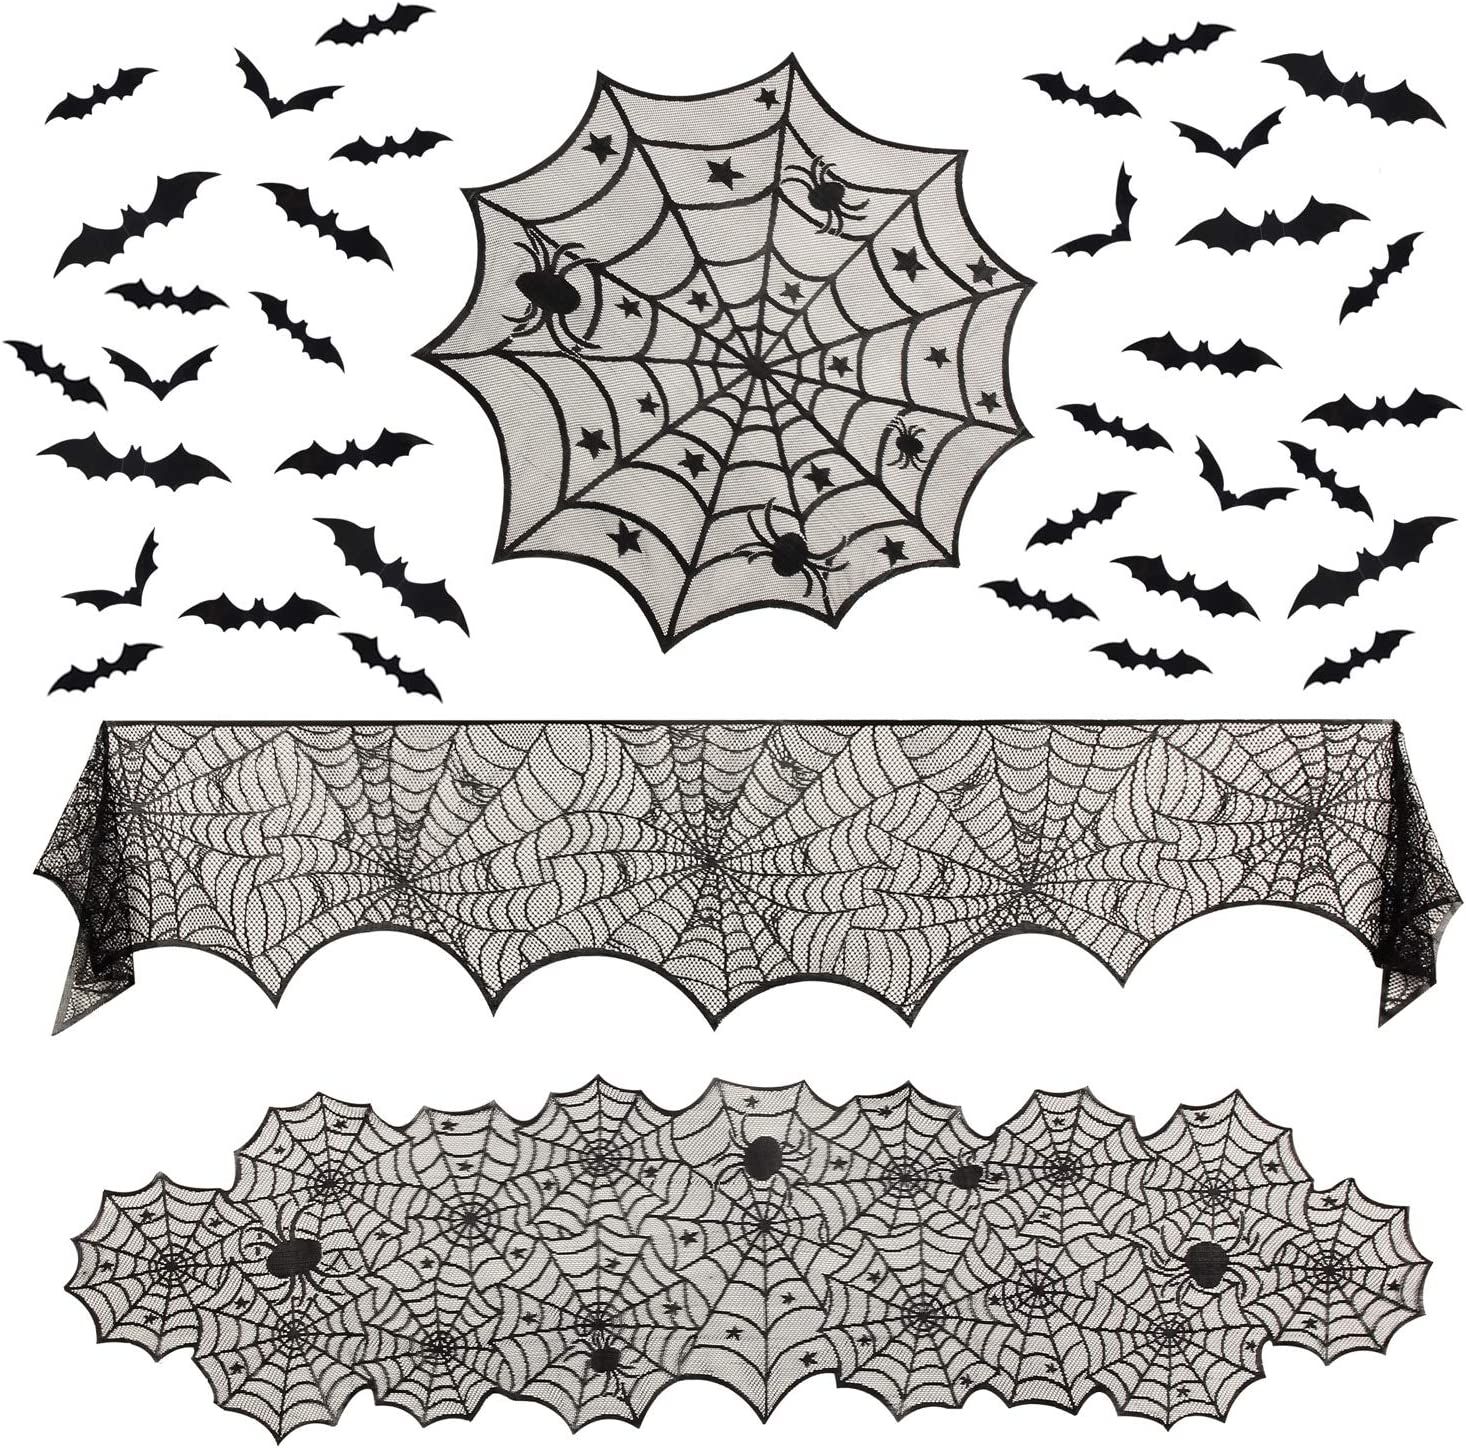 Tanlee 39 Pieces Halloween Lace Decorations include Spider Web Lace Table Runner,Round Lace Table Cover,Fireplace Mantel Scarf and 36 Pieces 3D Bats Wall Sticker Decal